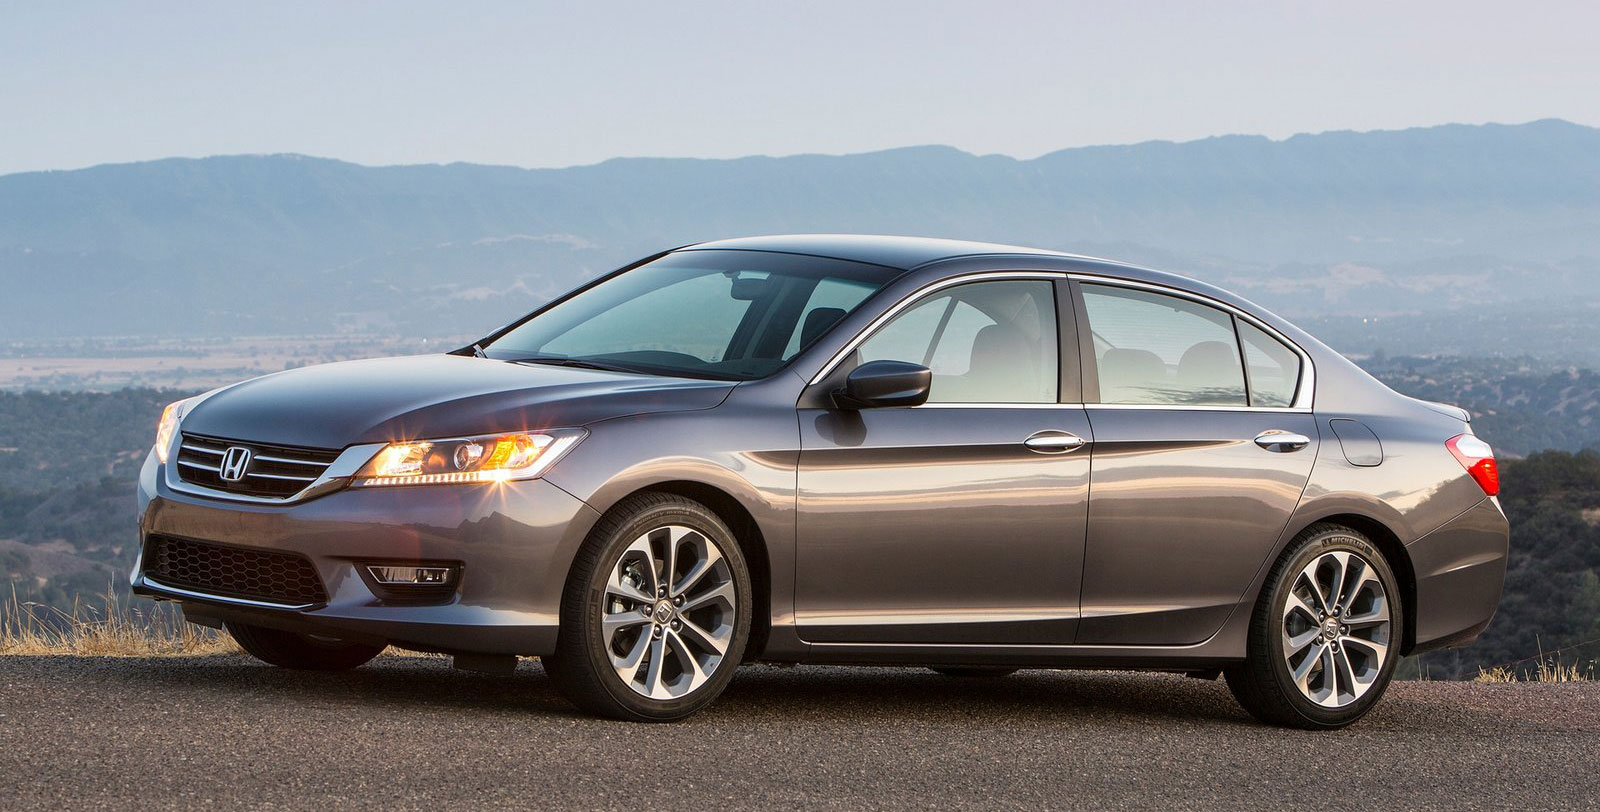 2018 Honda Accord >> 2013 Honda Accord: full details and specifications! Paul Tan - Image 129260